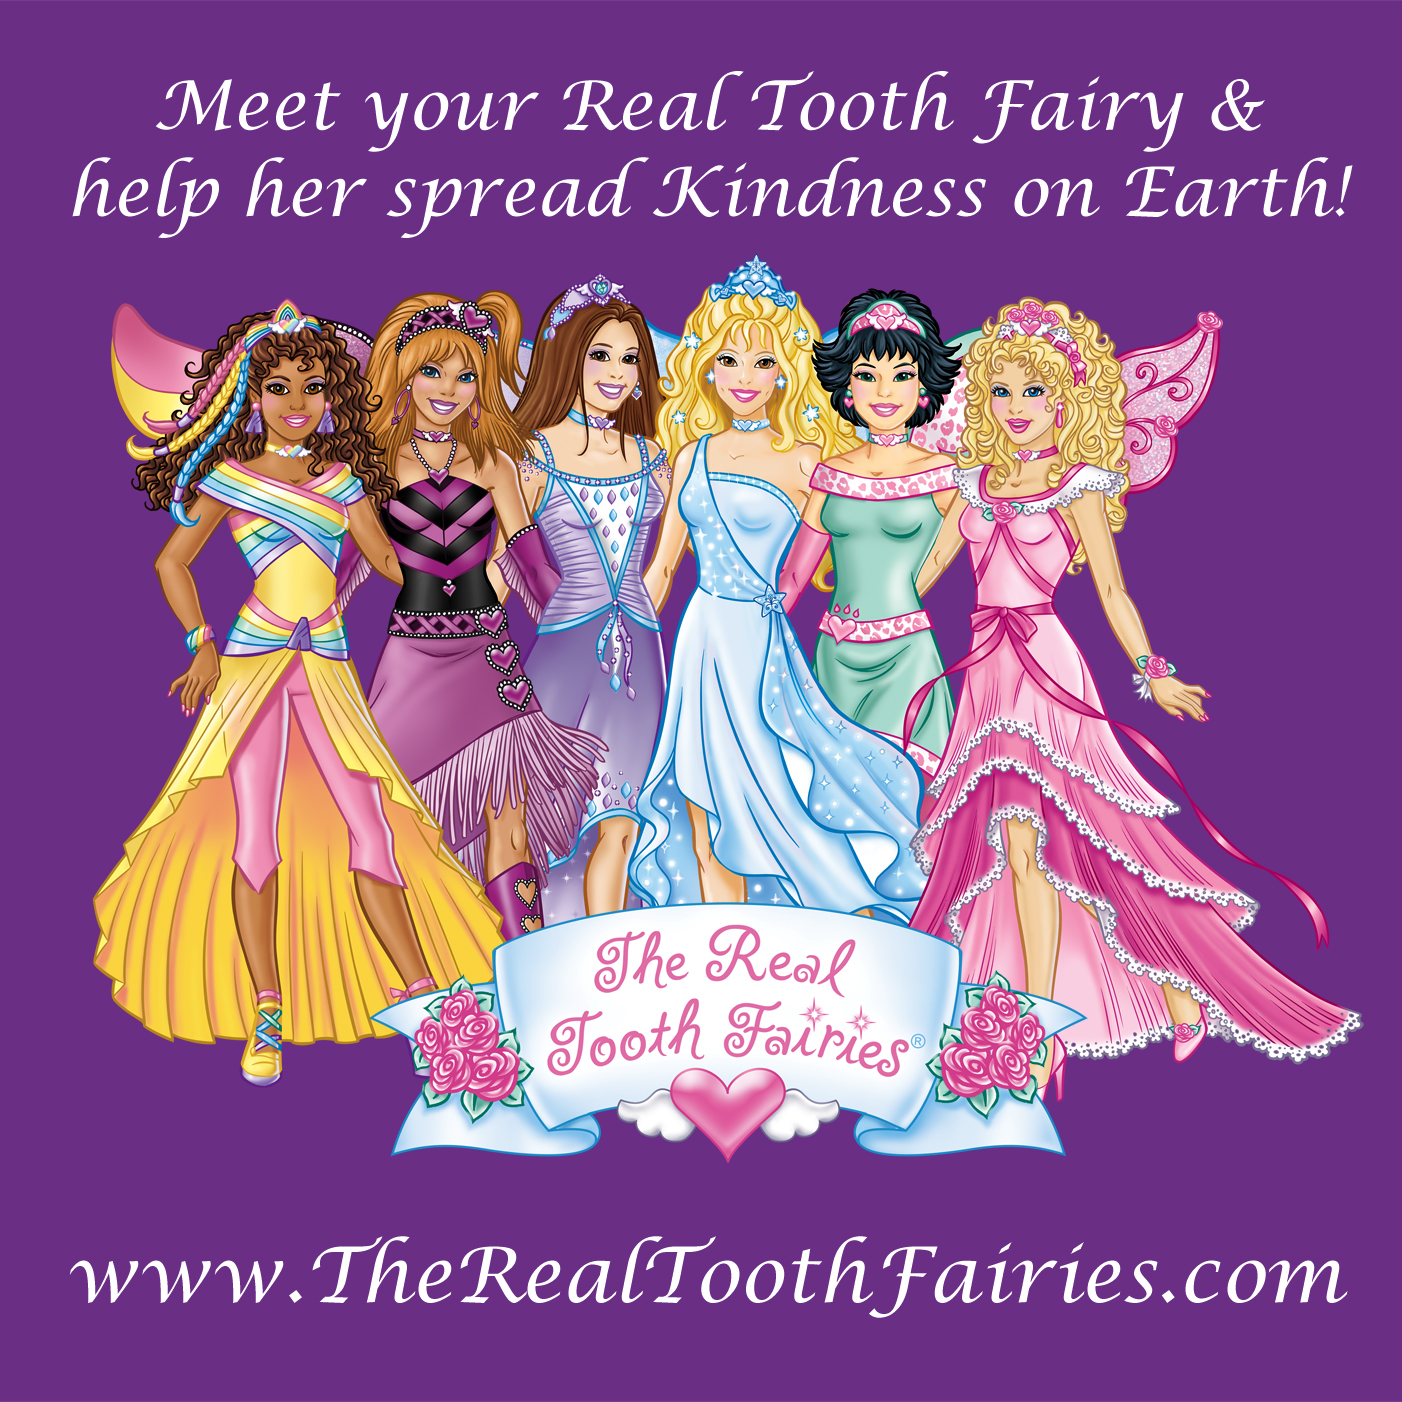 tooth-fairy-kindness-program-3